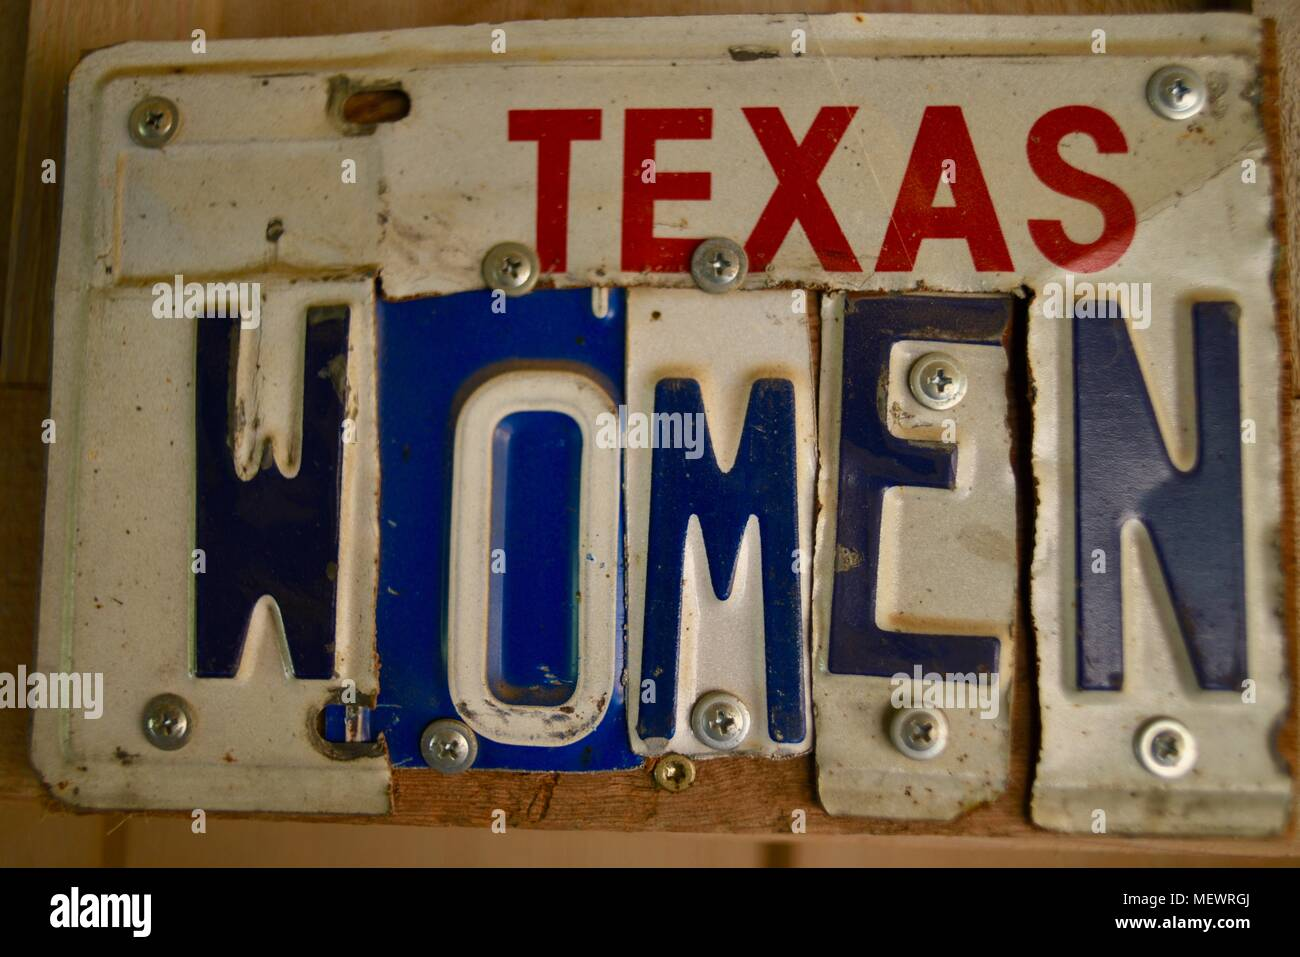 Old License Plates Stock Photos & Old License Plates Stock Images ...